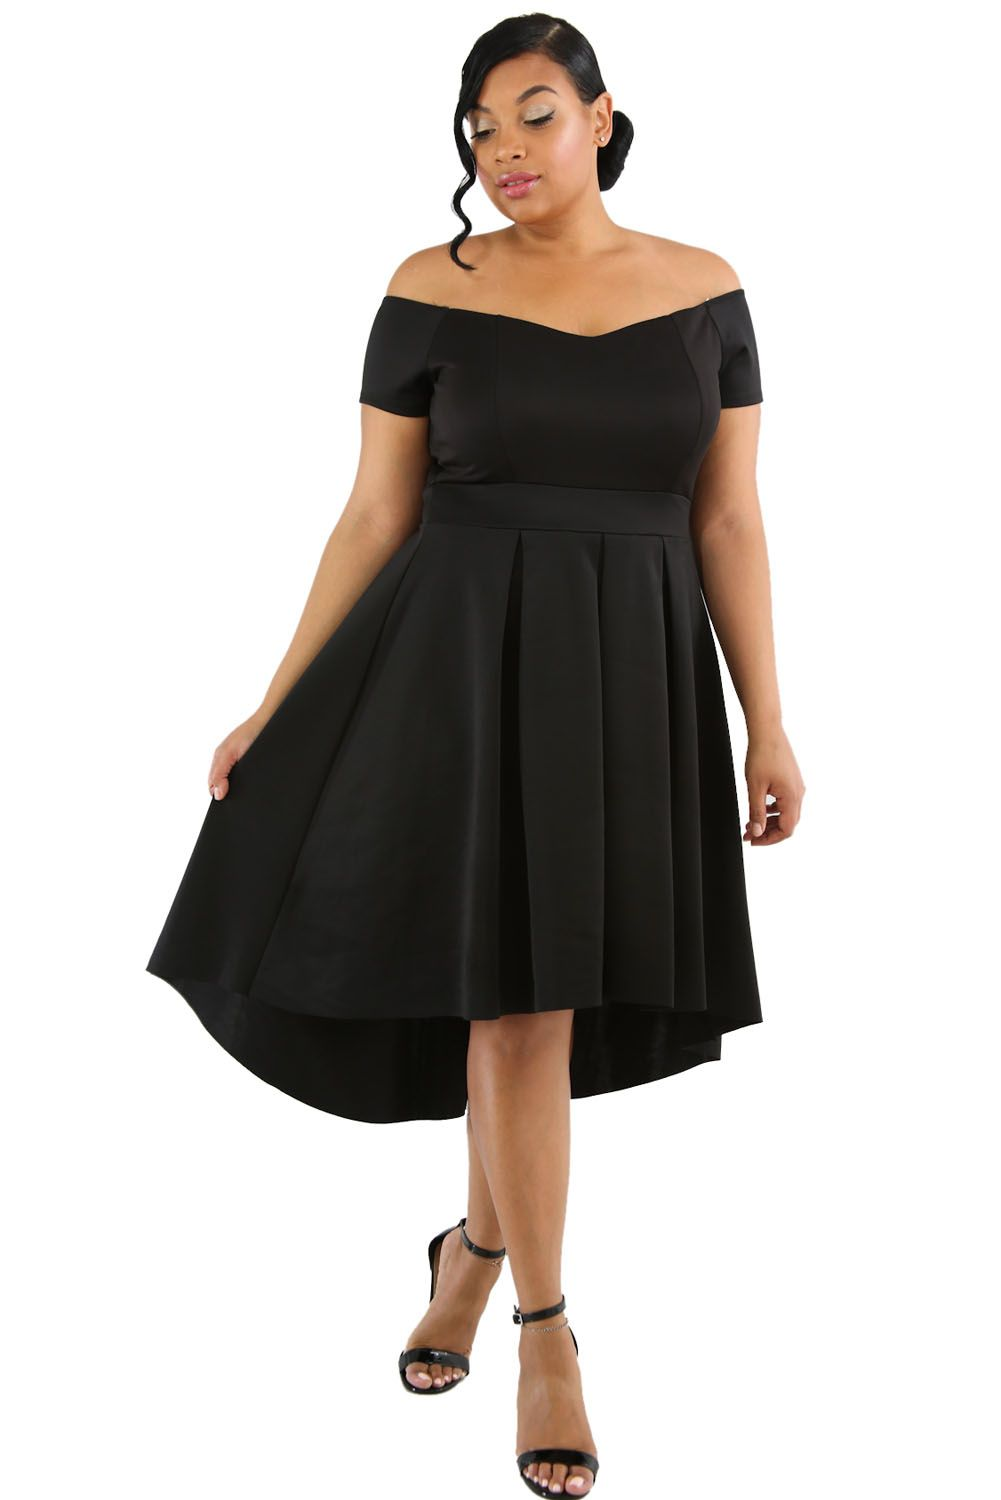 Black Plus Size Off Shoulder Swing Dress | swing dress | Dresses ...